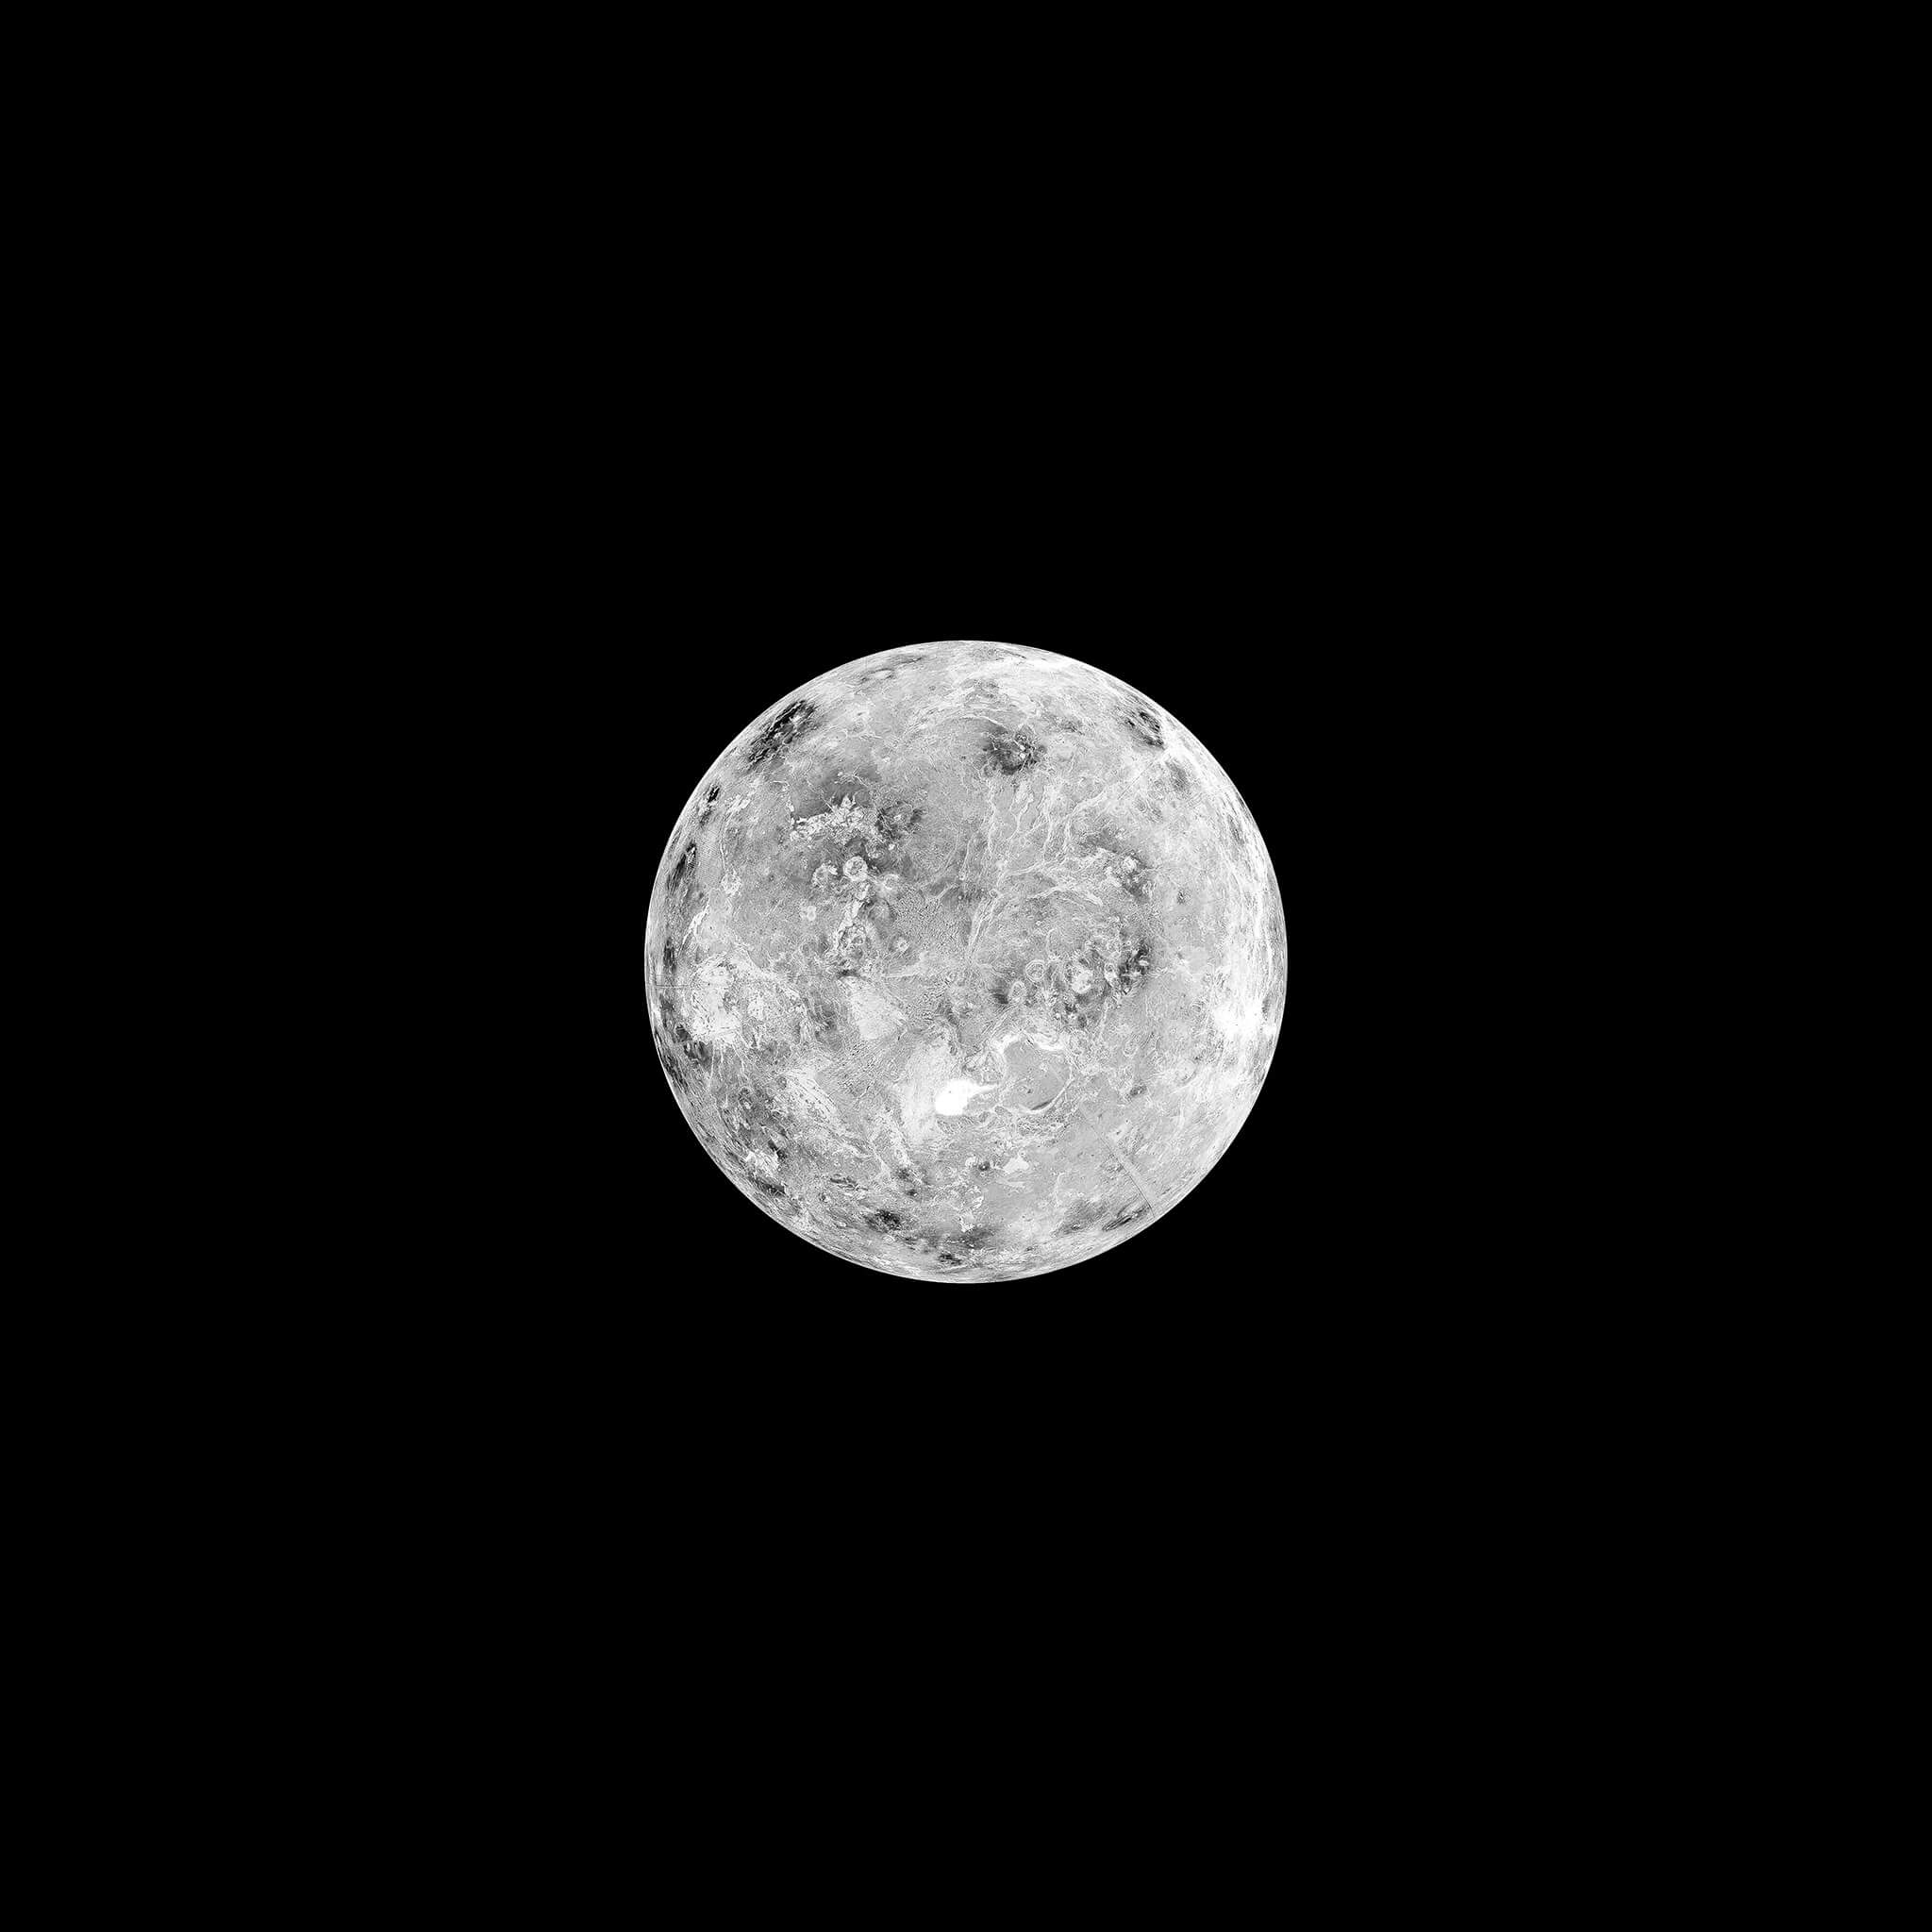 wallpapers lune moon ipad air pro 1